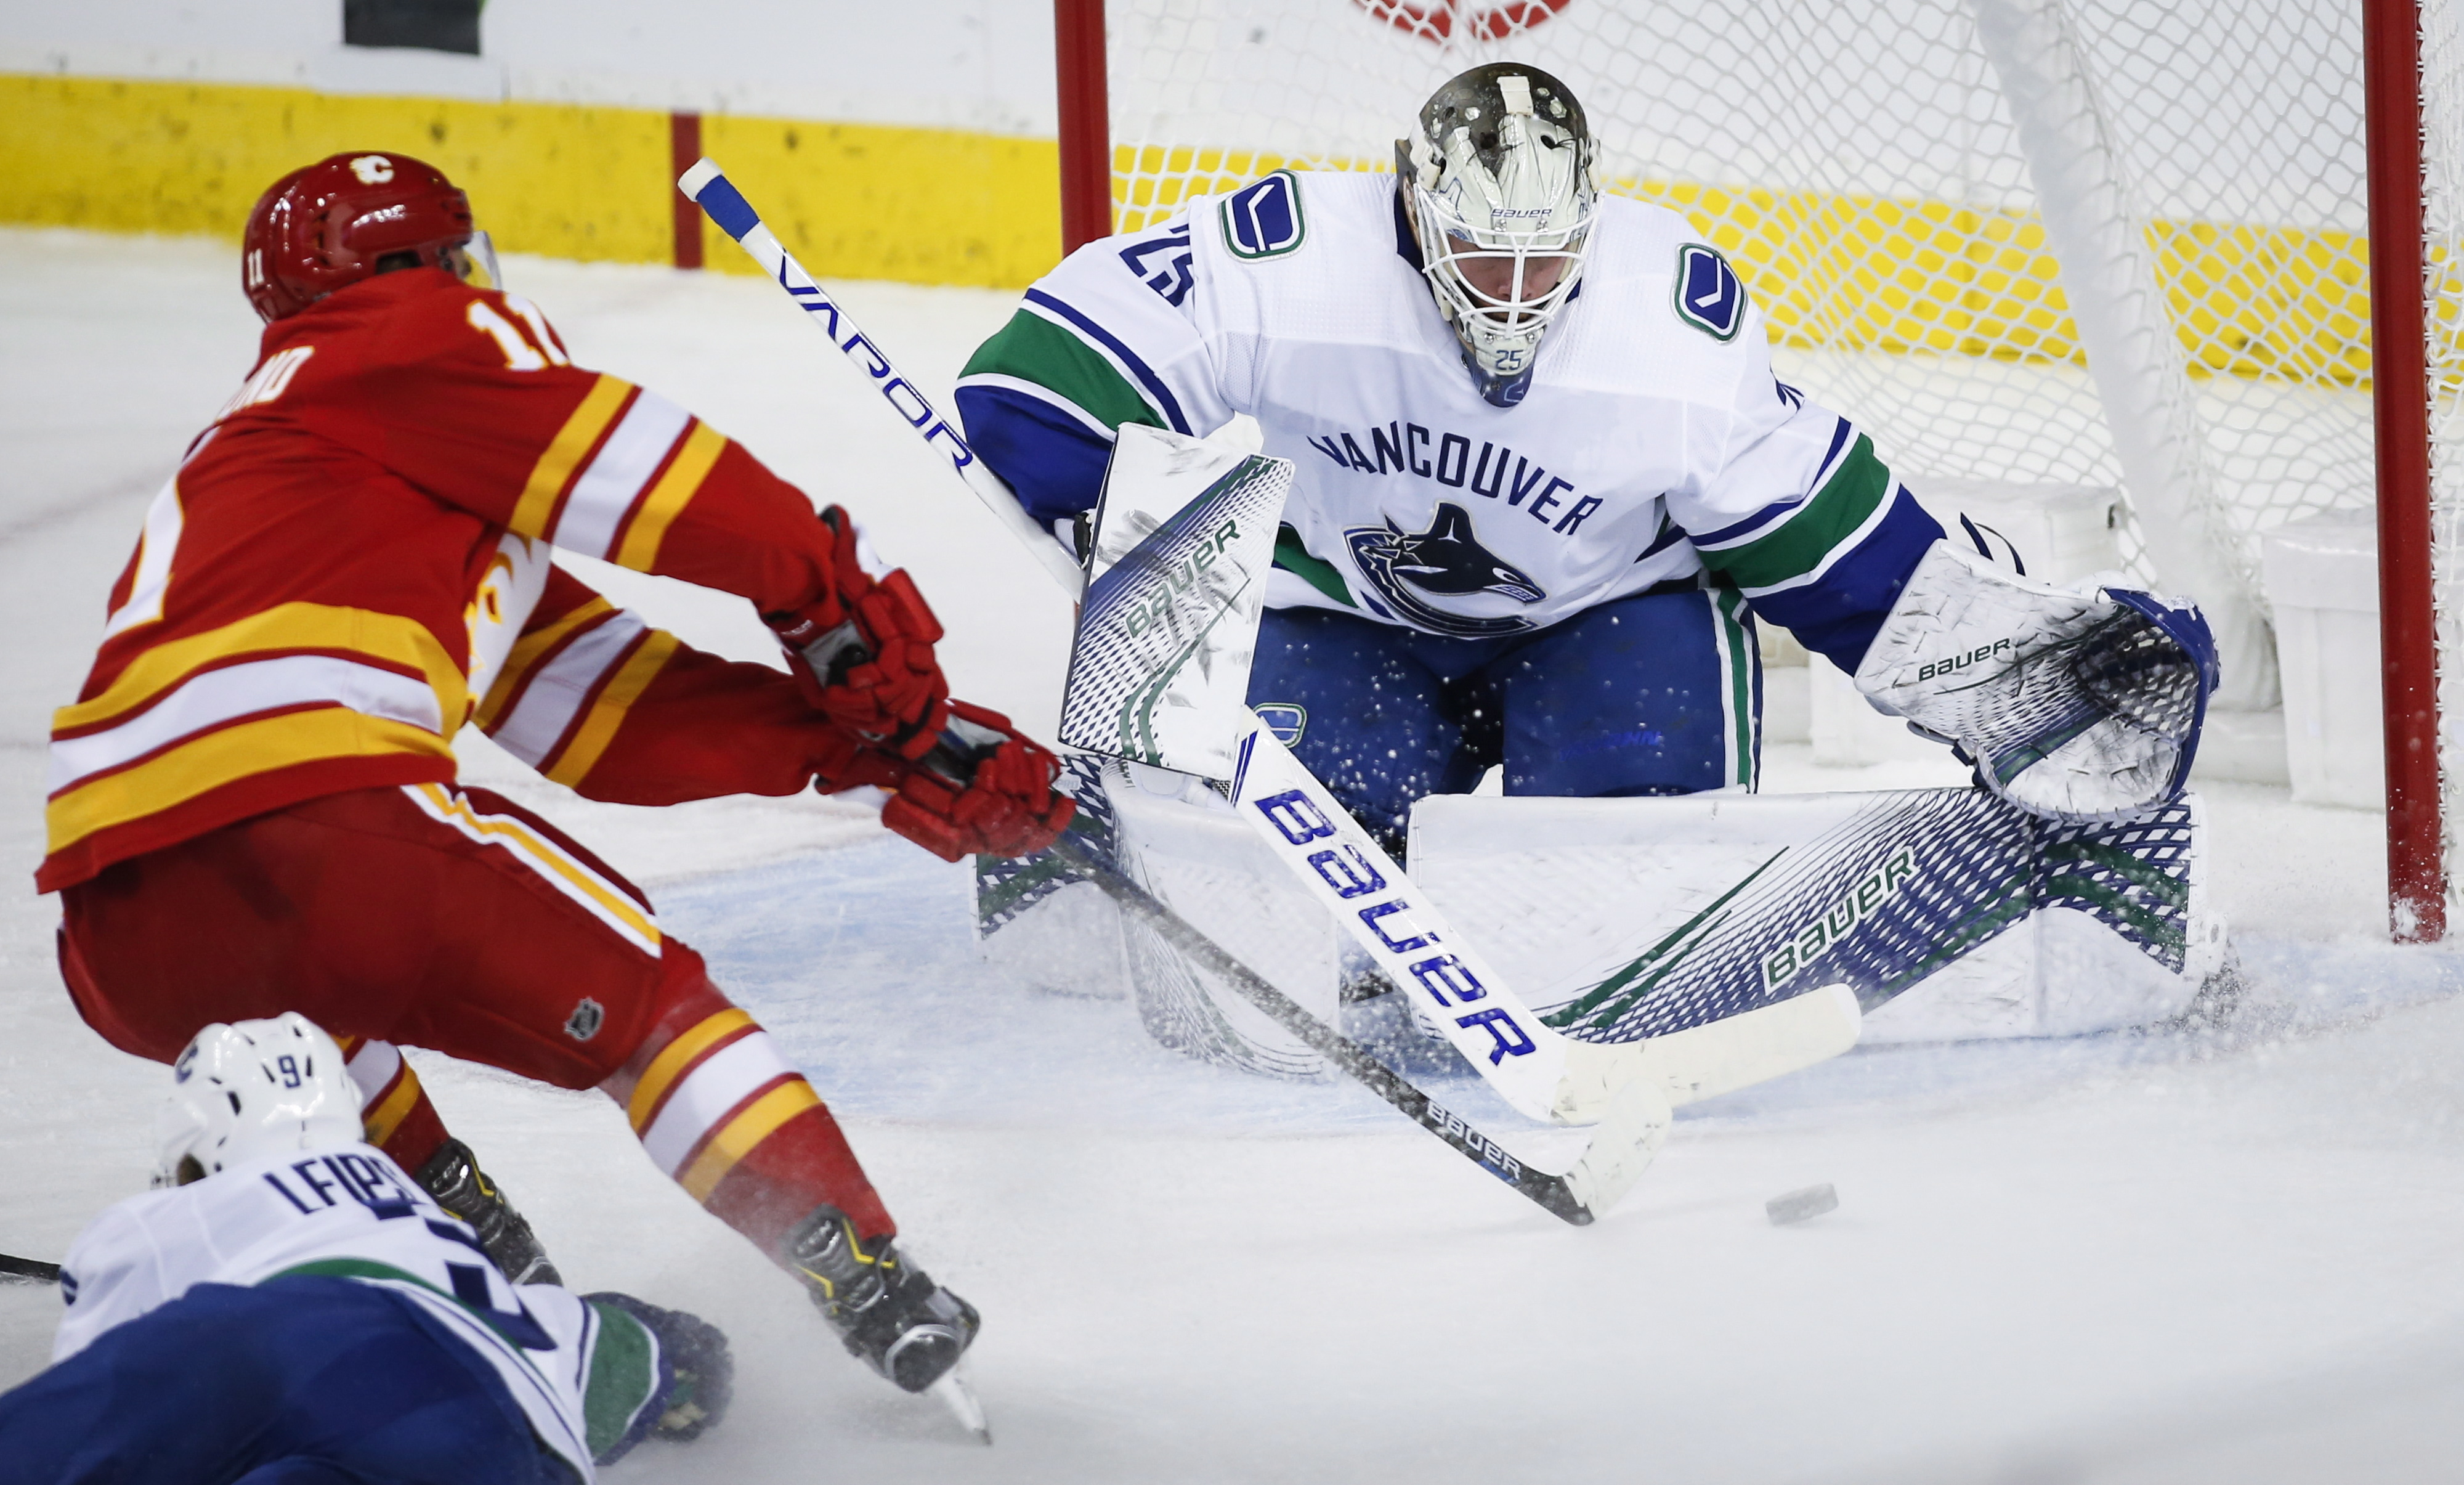 Lindholm scores twice, Flames beat Canucks 7-4